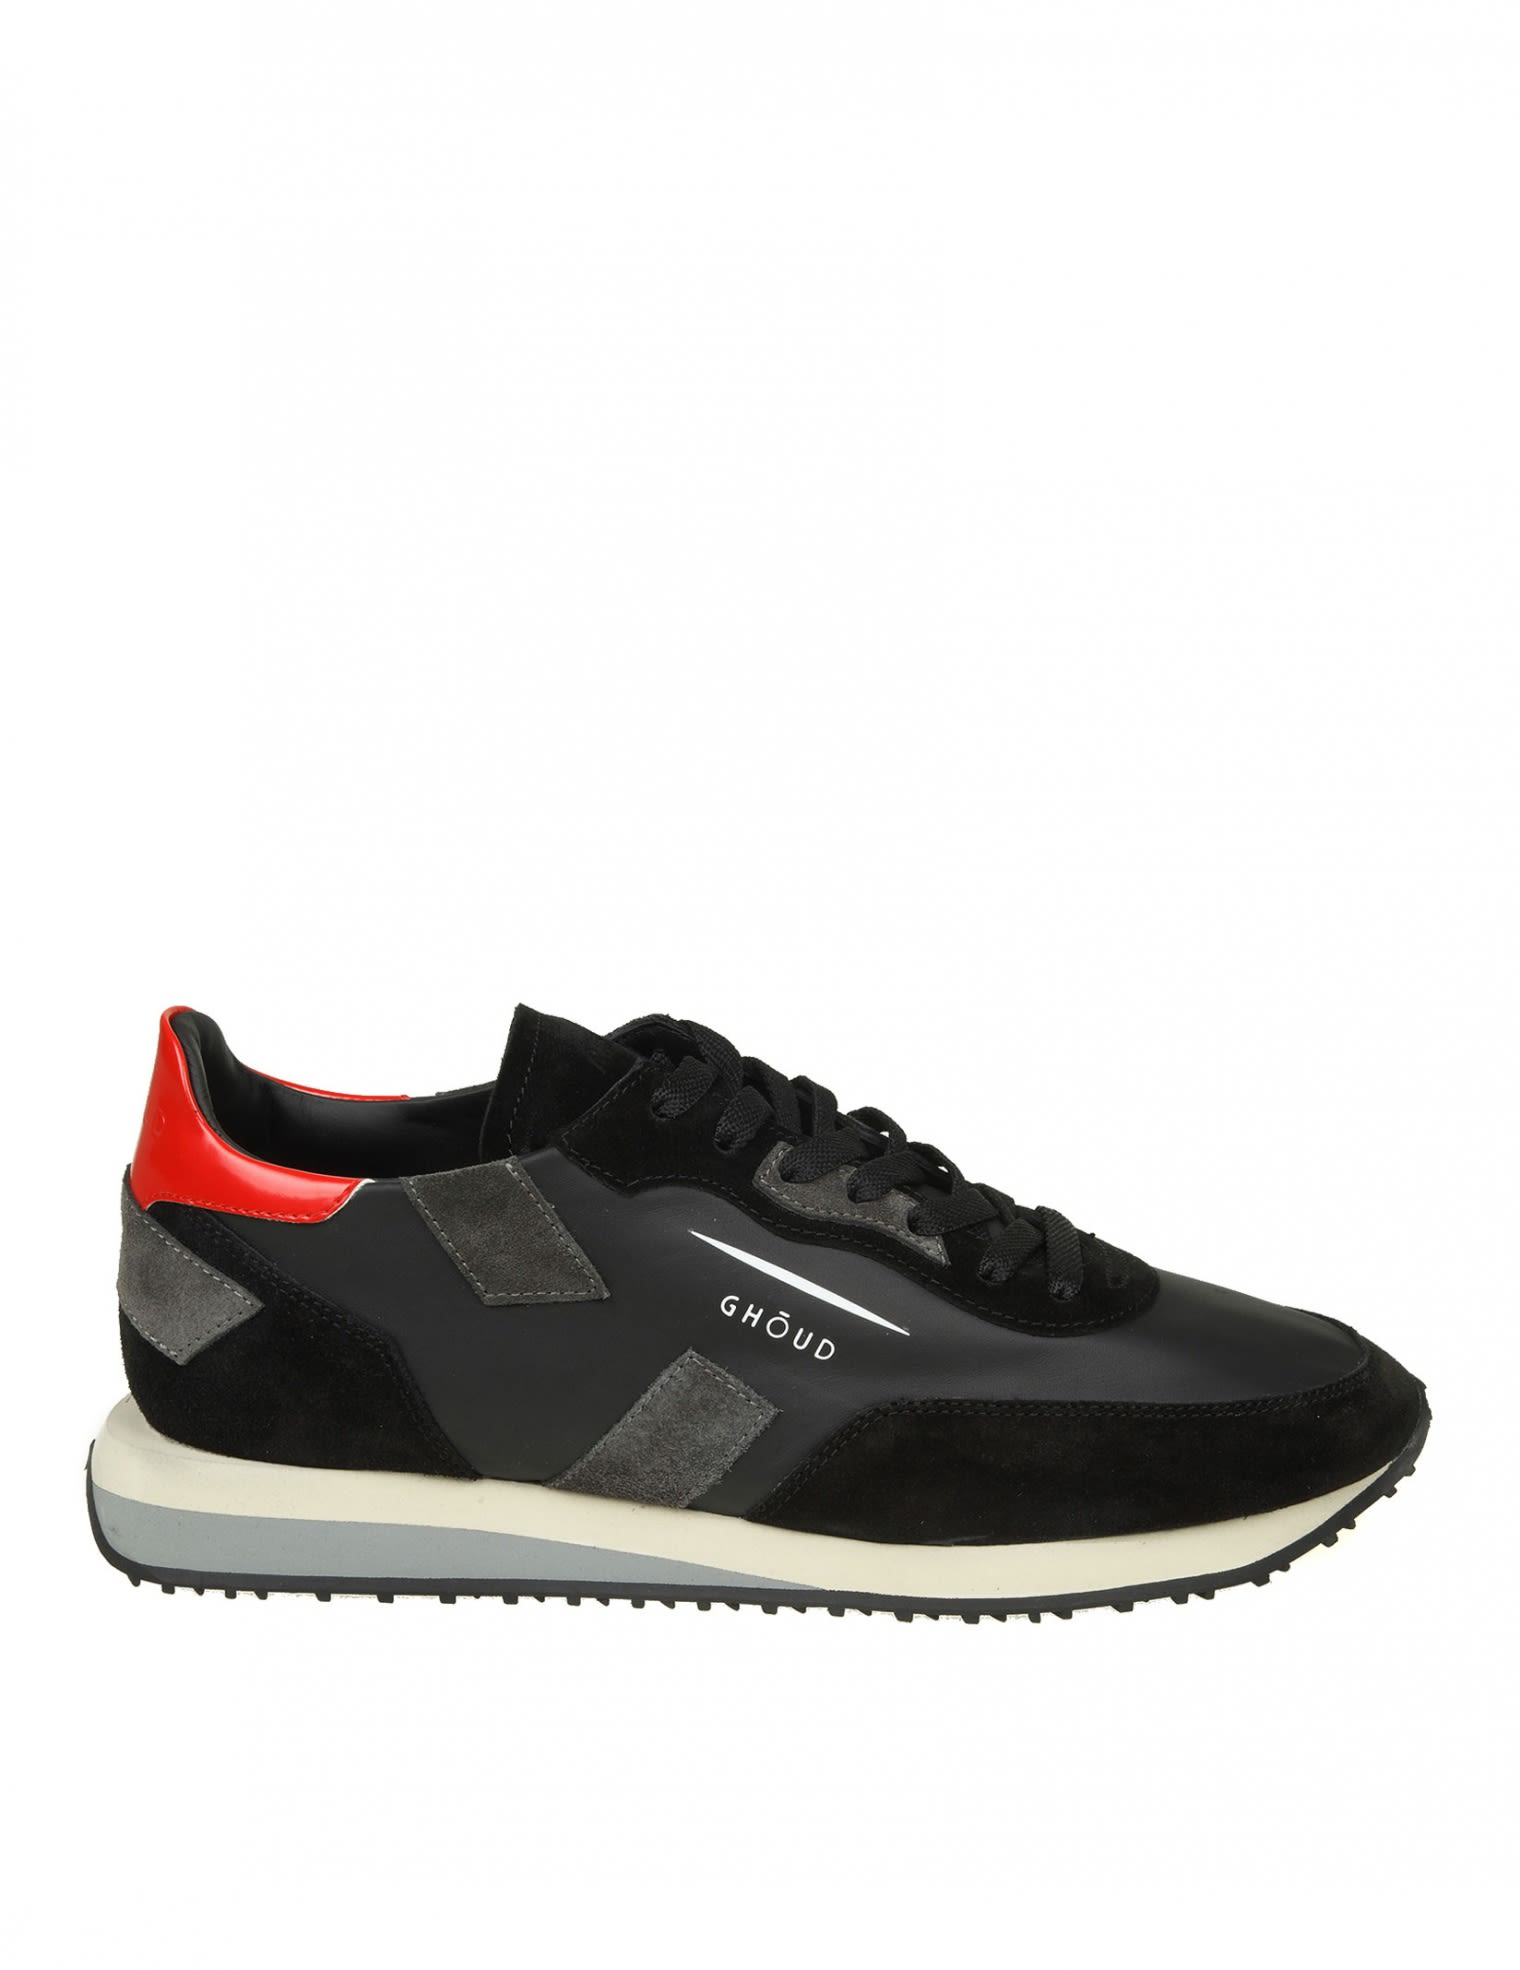 RUSH GHOUD SNEAKERS IN BLACK SUEDE AND LEATHER